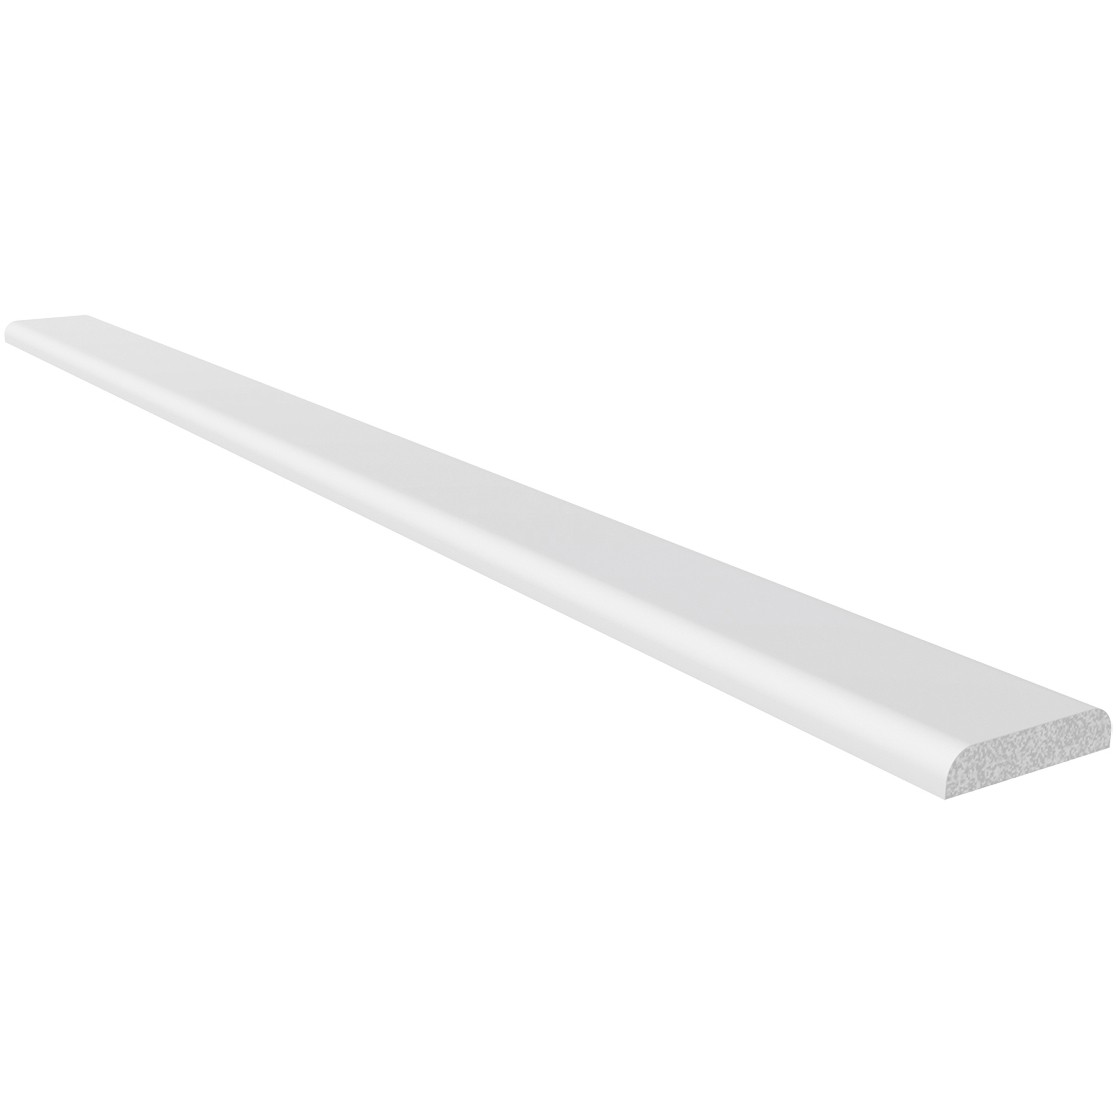 Freefoam Plastic D Shape Window Trim - White, 28mm, 5 metre